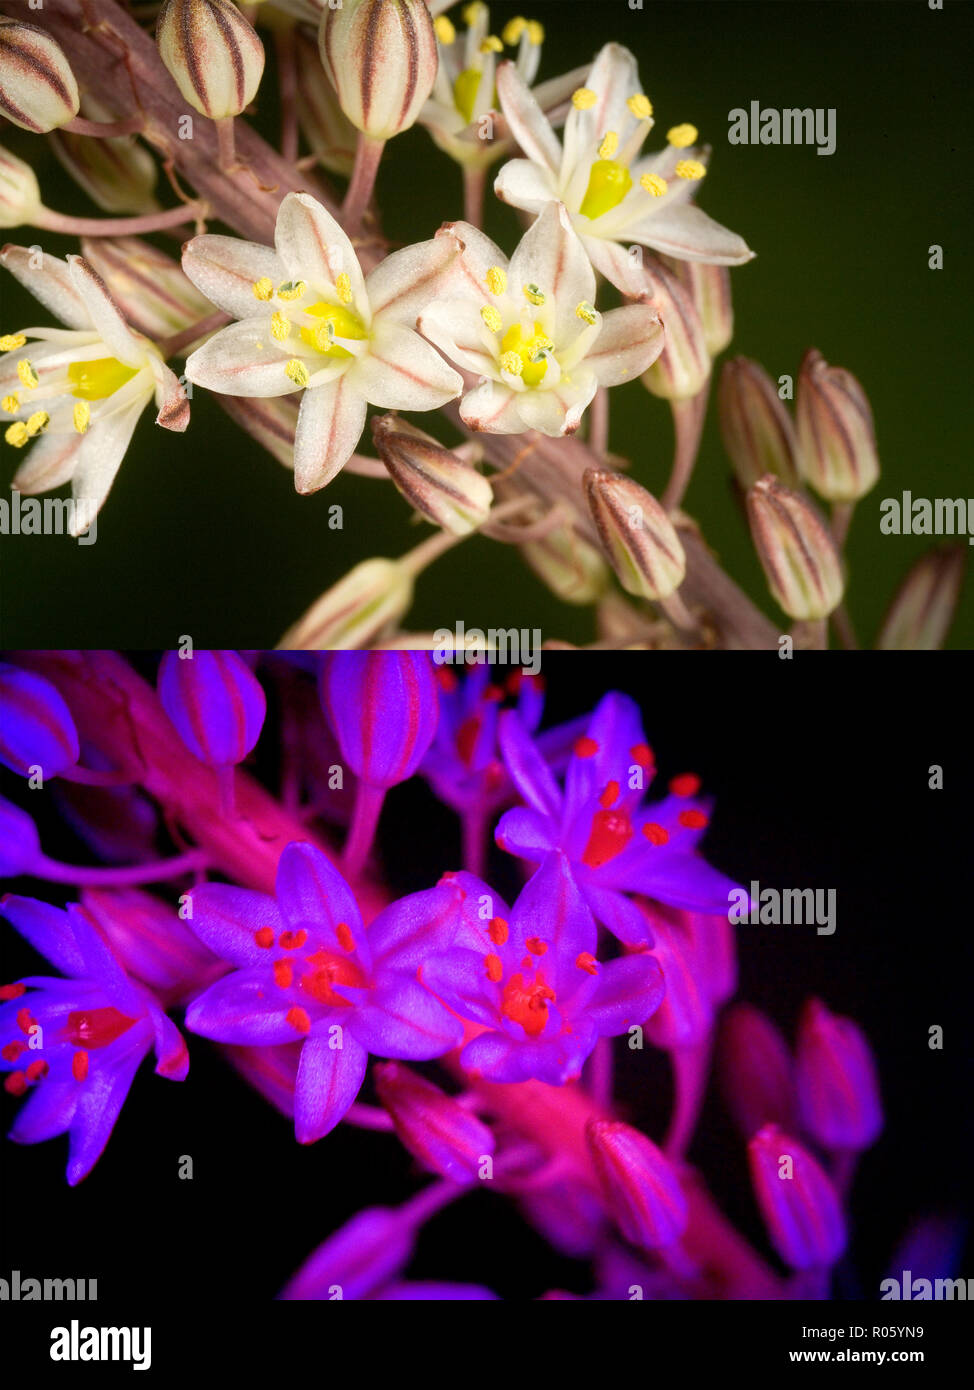 Asphodelus albus, White asphodel, flowers. Above photographed with daylight and bellow showing fluorescent colours when photographed under ultraviolet - Stock Image